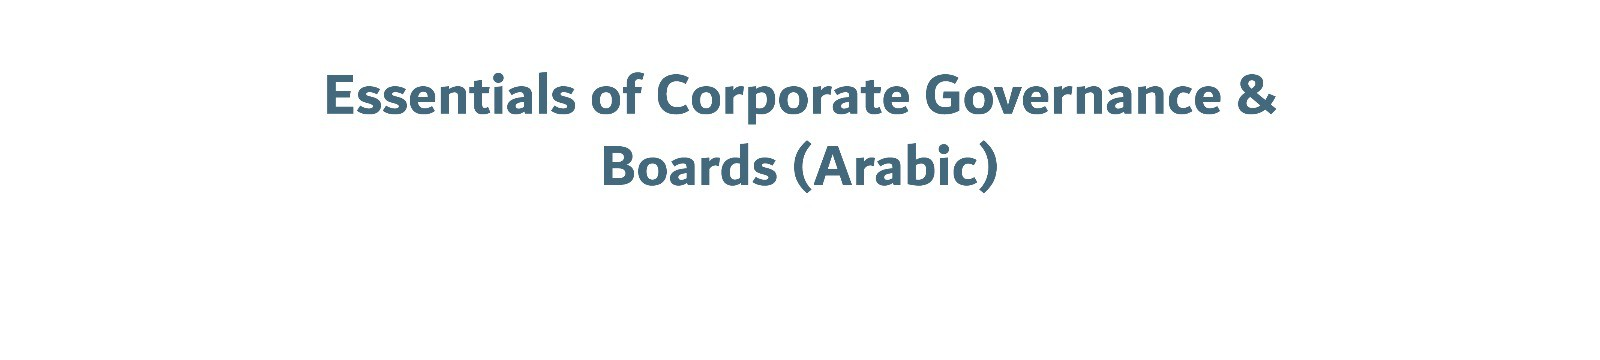 Essentials of Corporate Governance and Boards (Arabic)